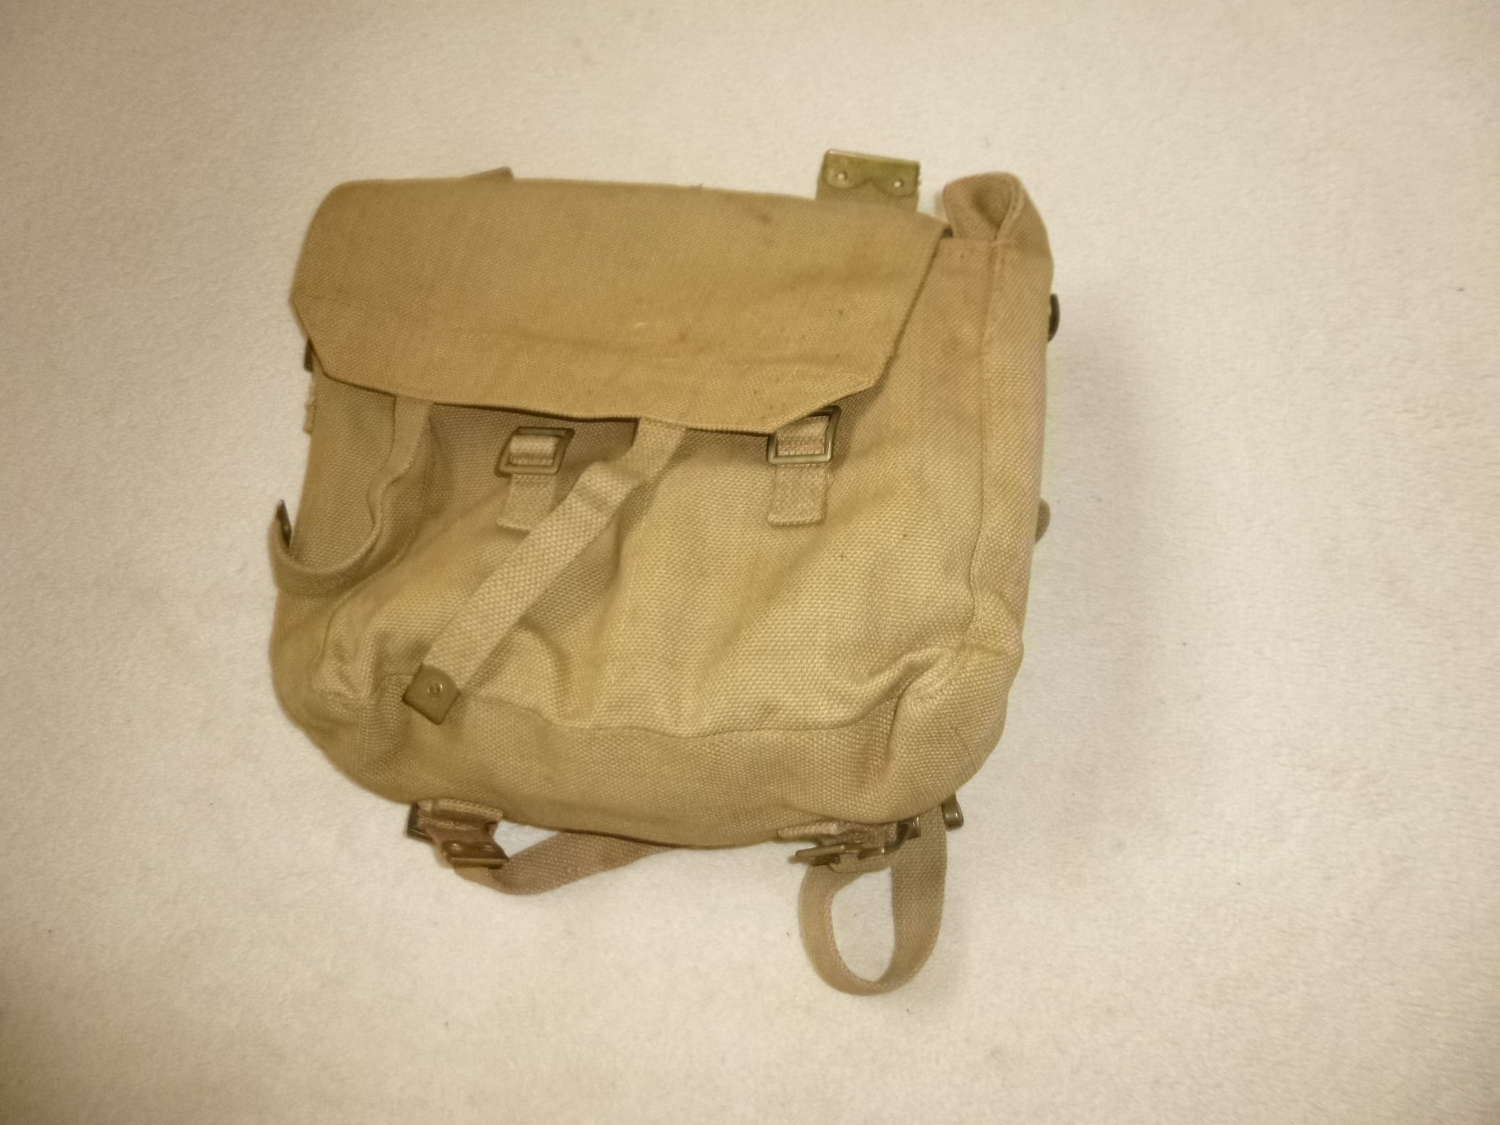 British Army small pack haversack